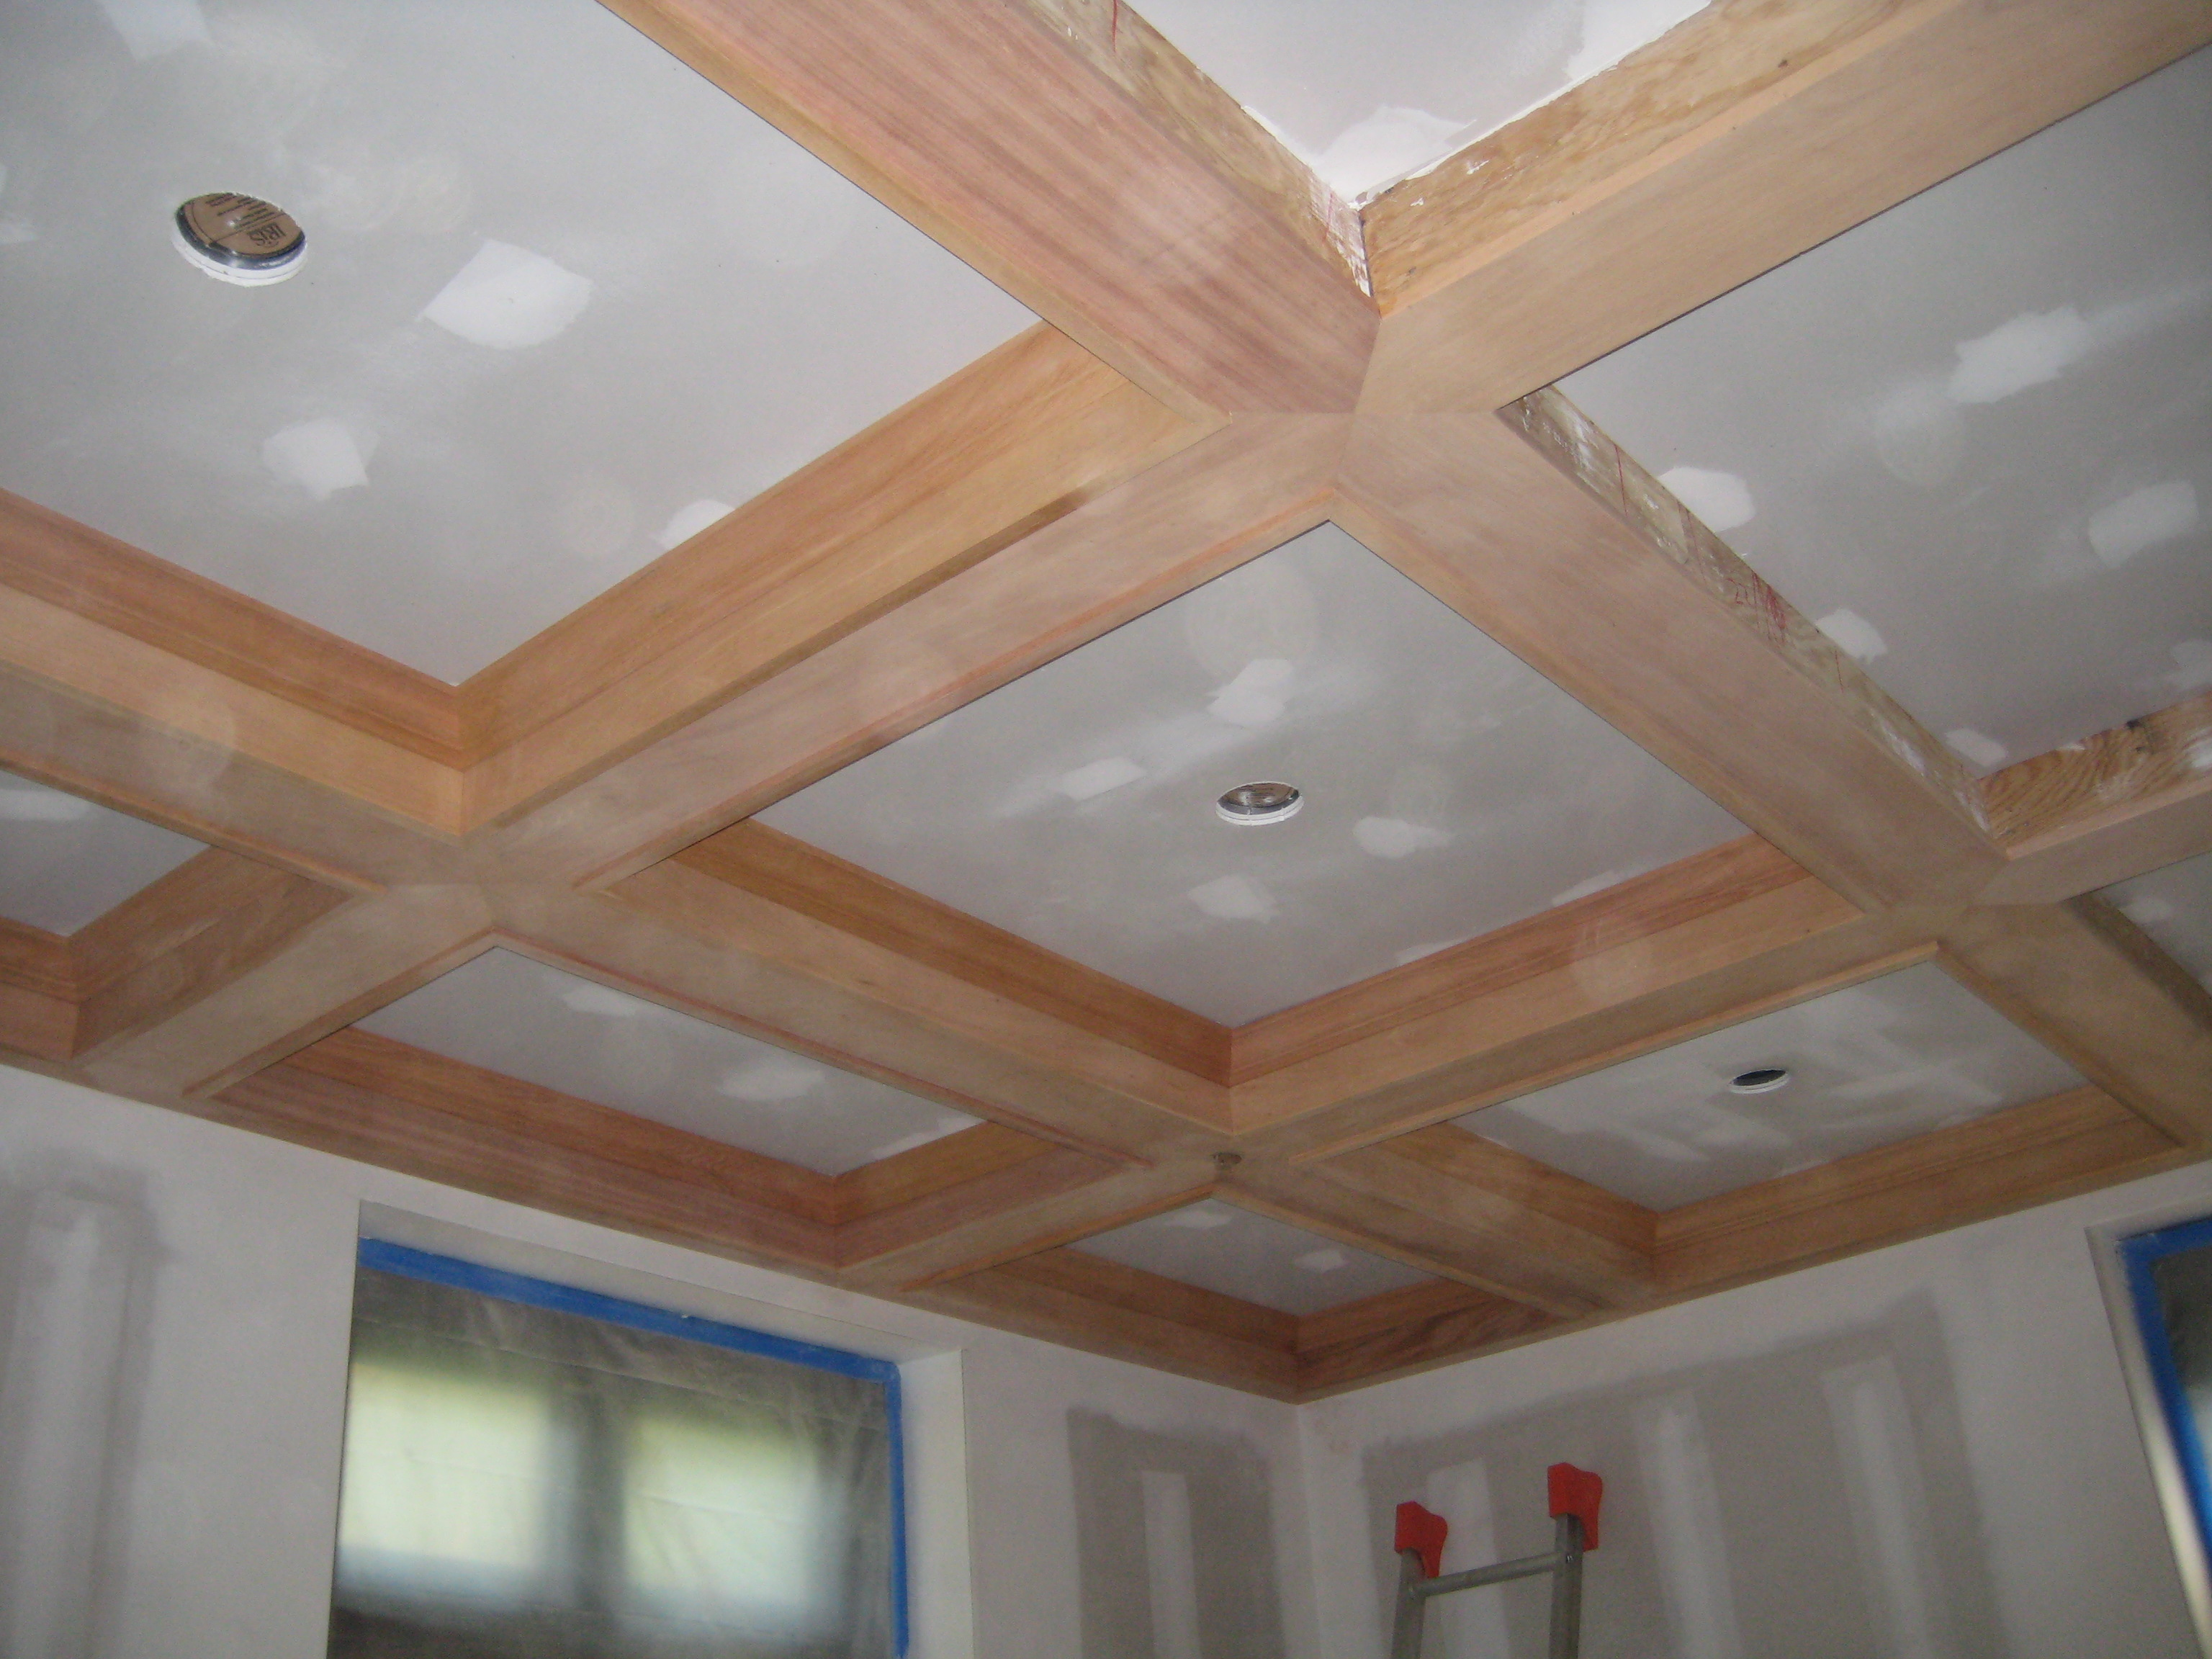 Coffered Ceiling in progress for the new room